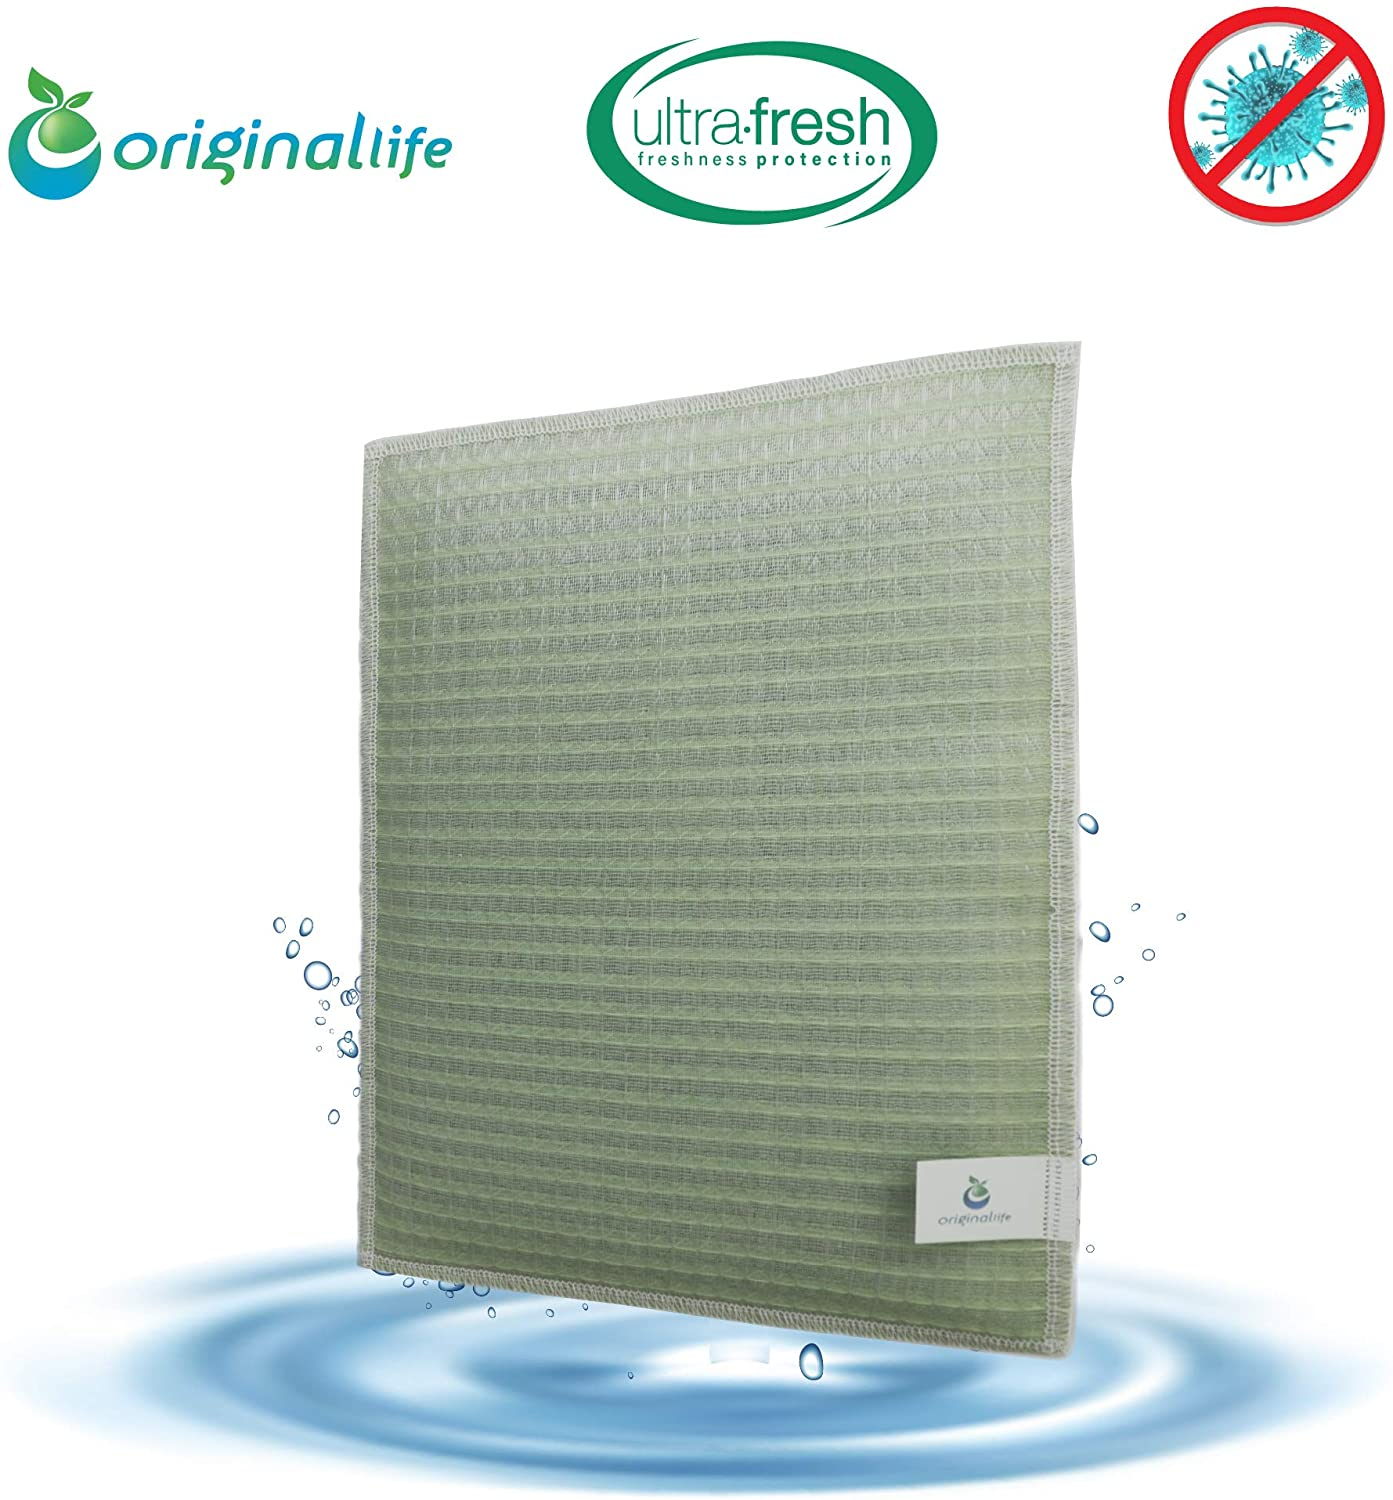 Originallife CLEAN Washable Reusable Air Purifier Filter for Helios EC 220 D (PRO)